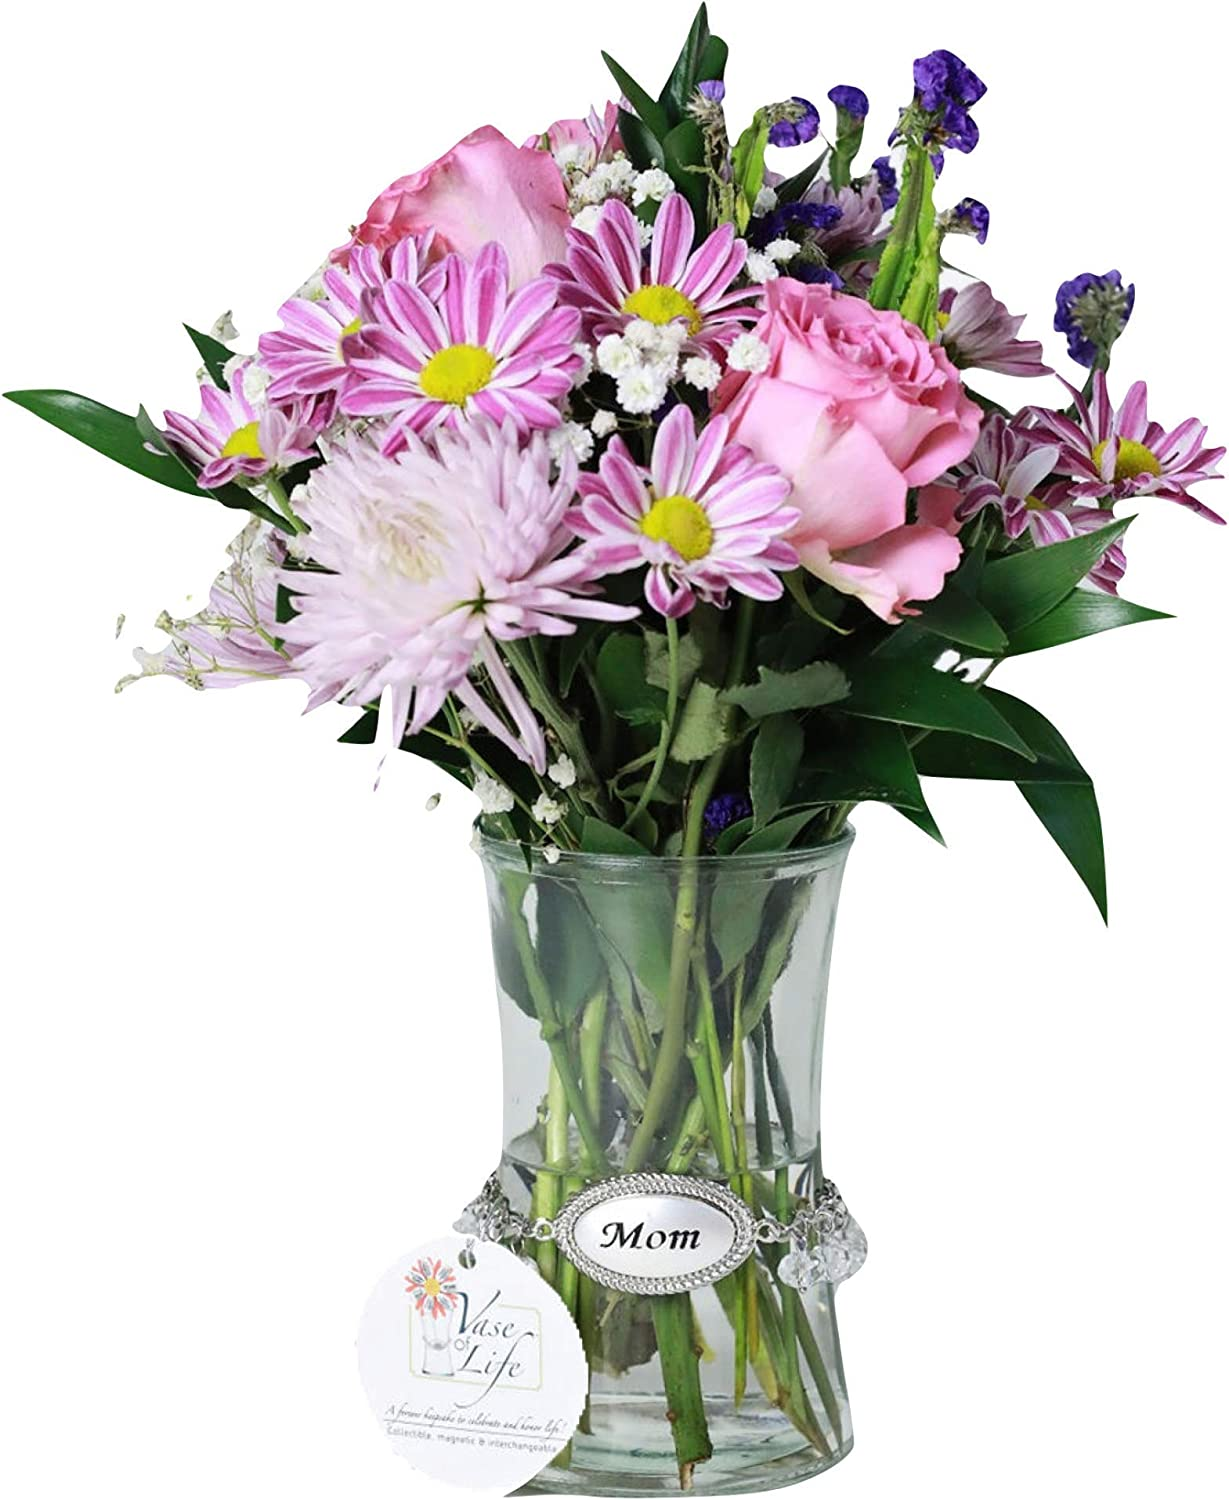 Vase of Life - Mixed Flower Bouquets - Includes Vase, Sentiment and Pink Roses, Fugi Mums, Purple Statice, Pom Poms, and Baby's Breath (Mom)